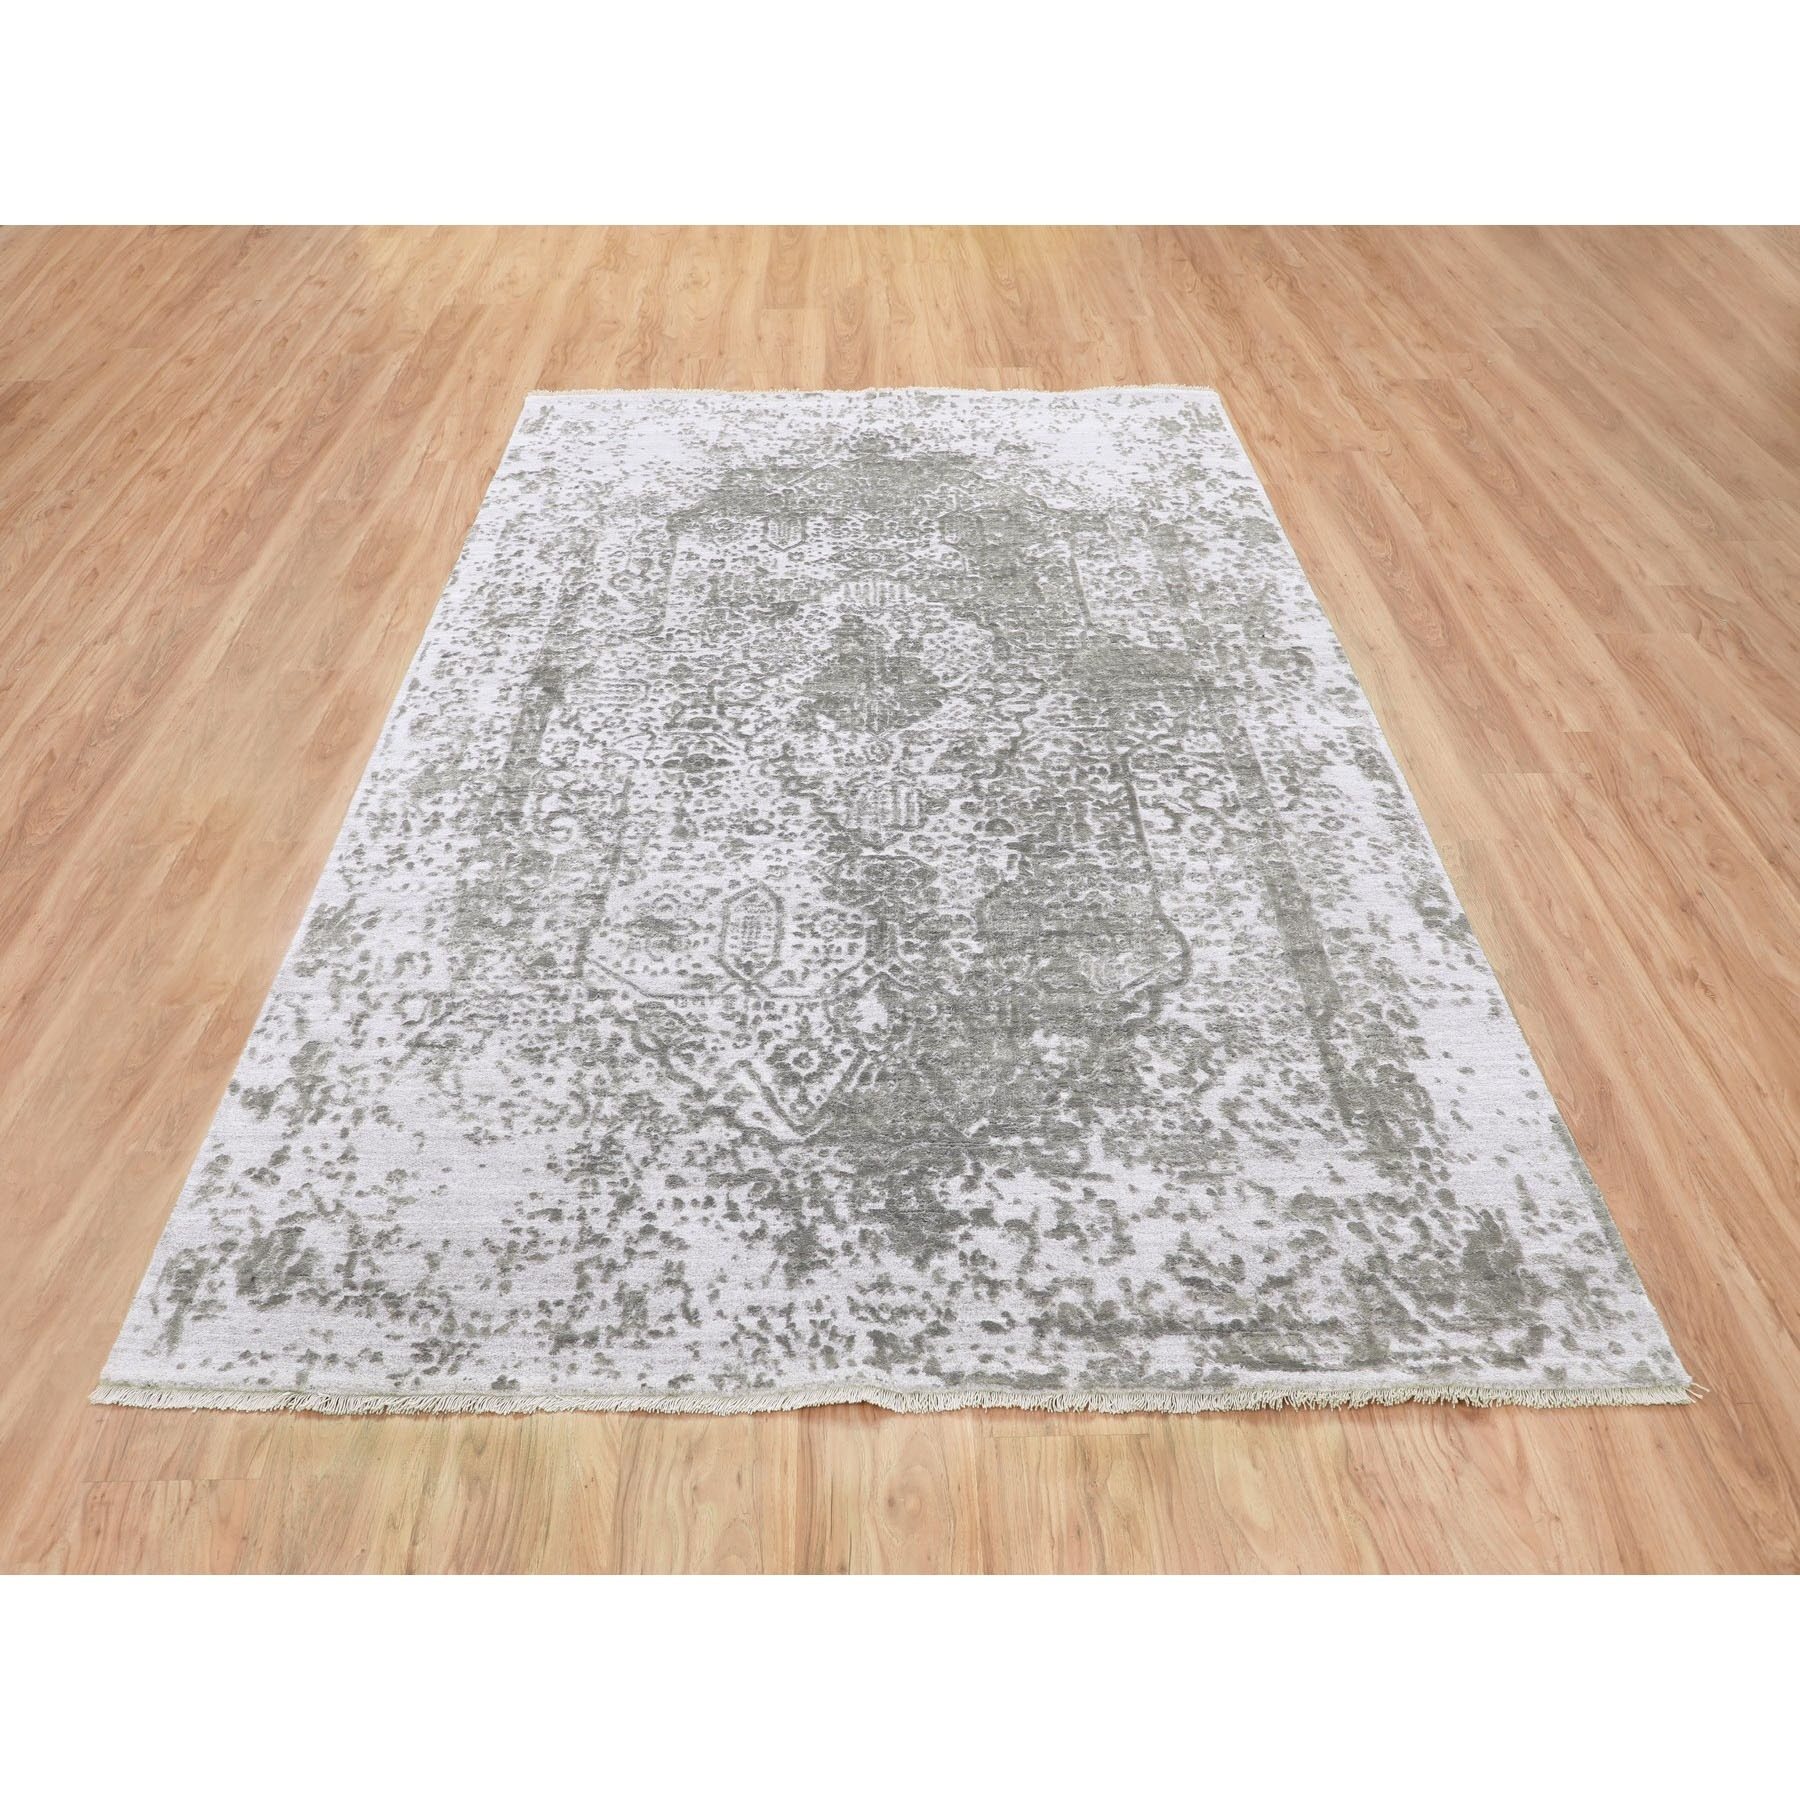 6'x9' Grey Broken Persian Design Wool And Pure Silk Hand Knotted Oriental Rug